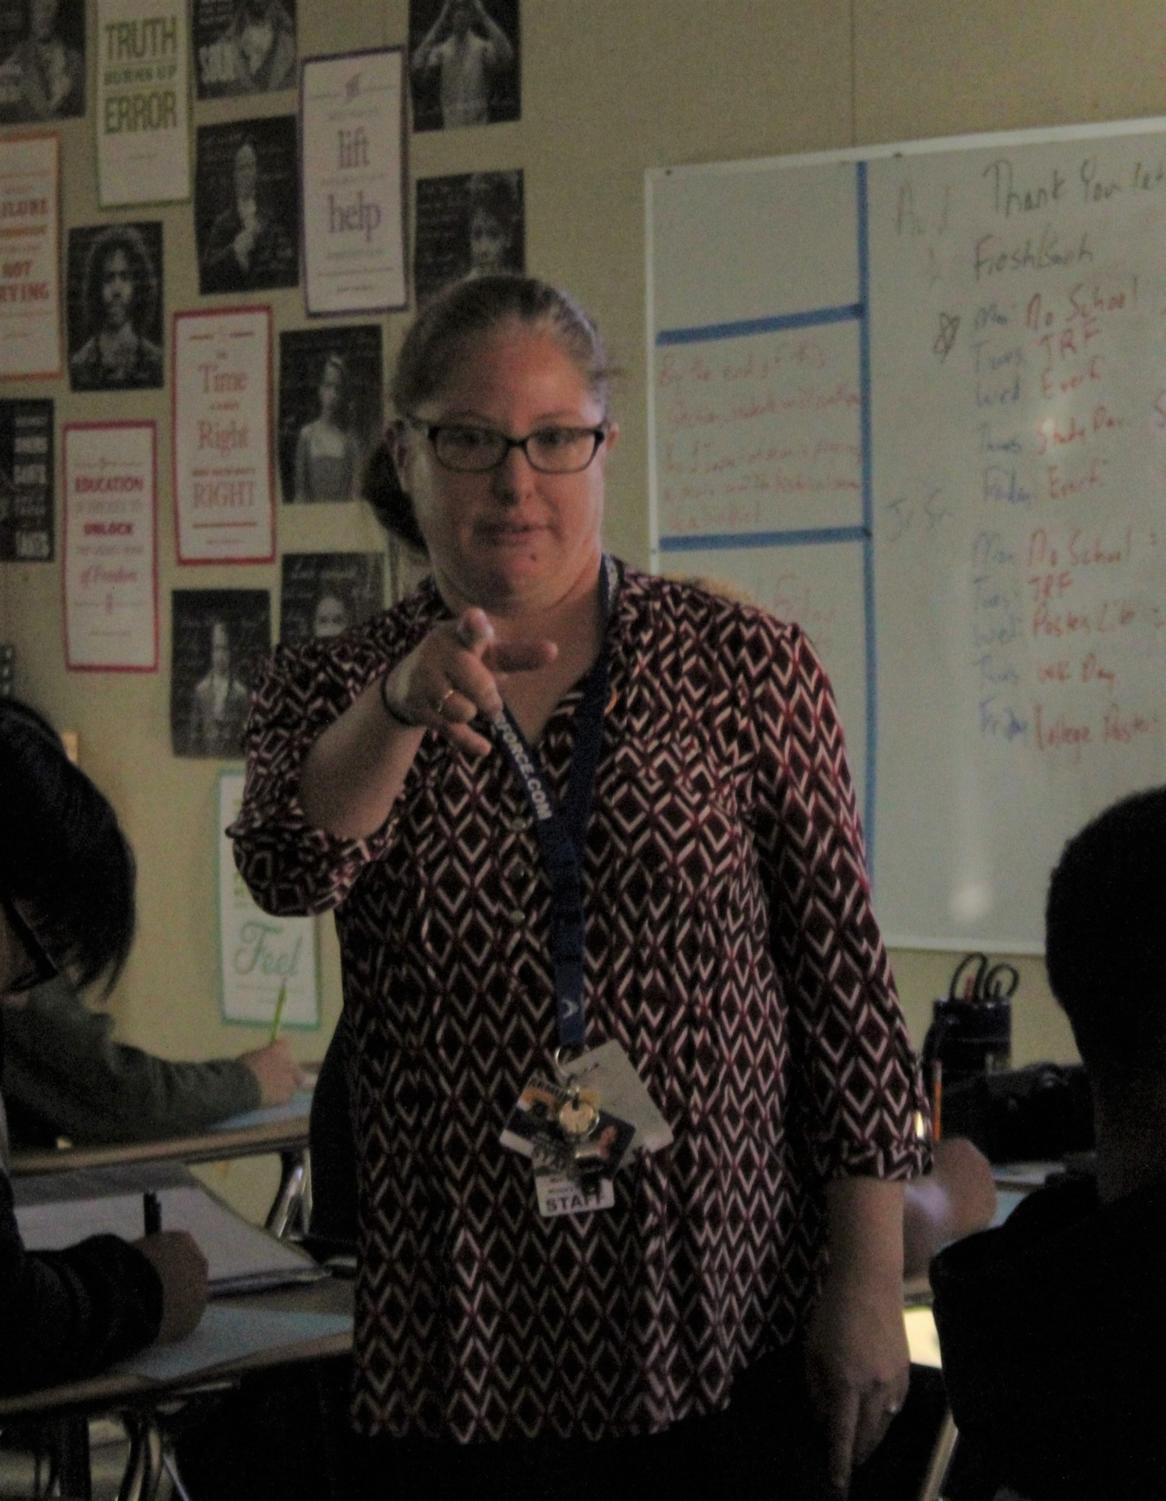 Ms. Lockhart points to the future by explaining the past.